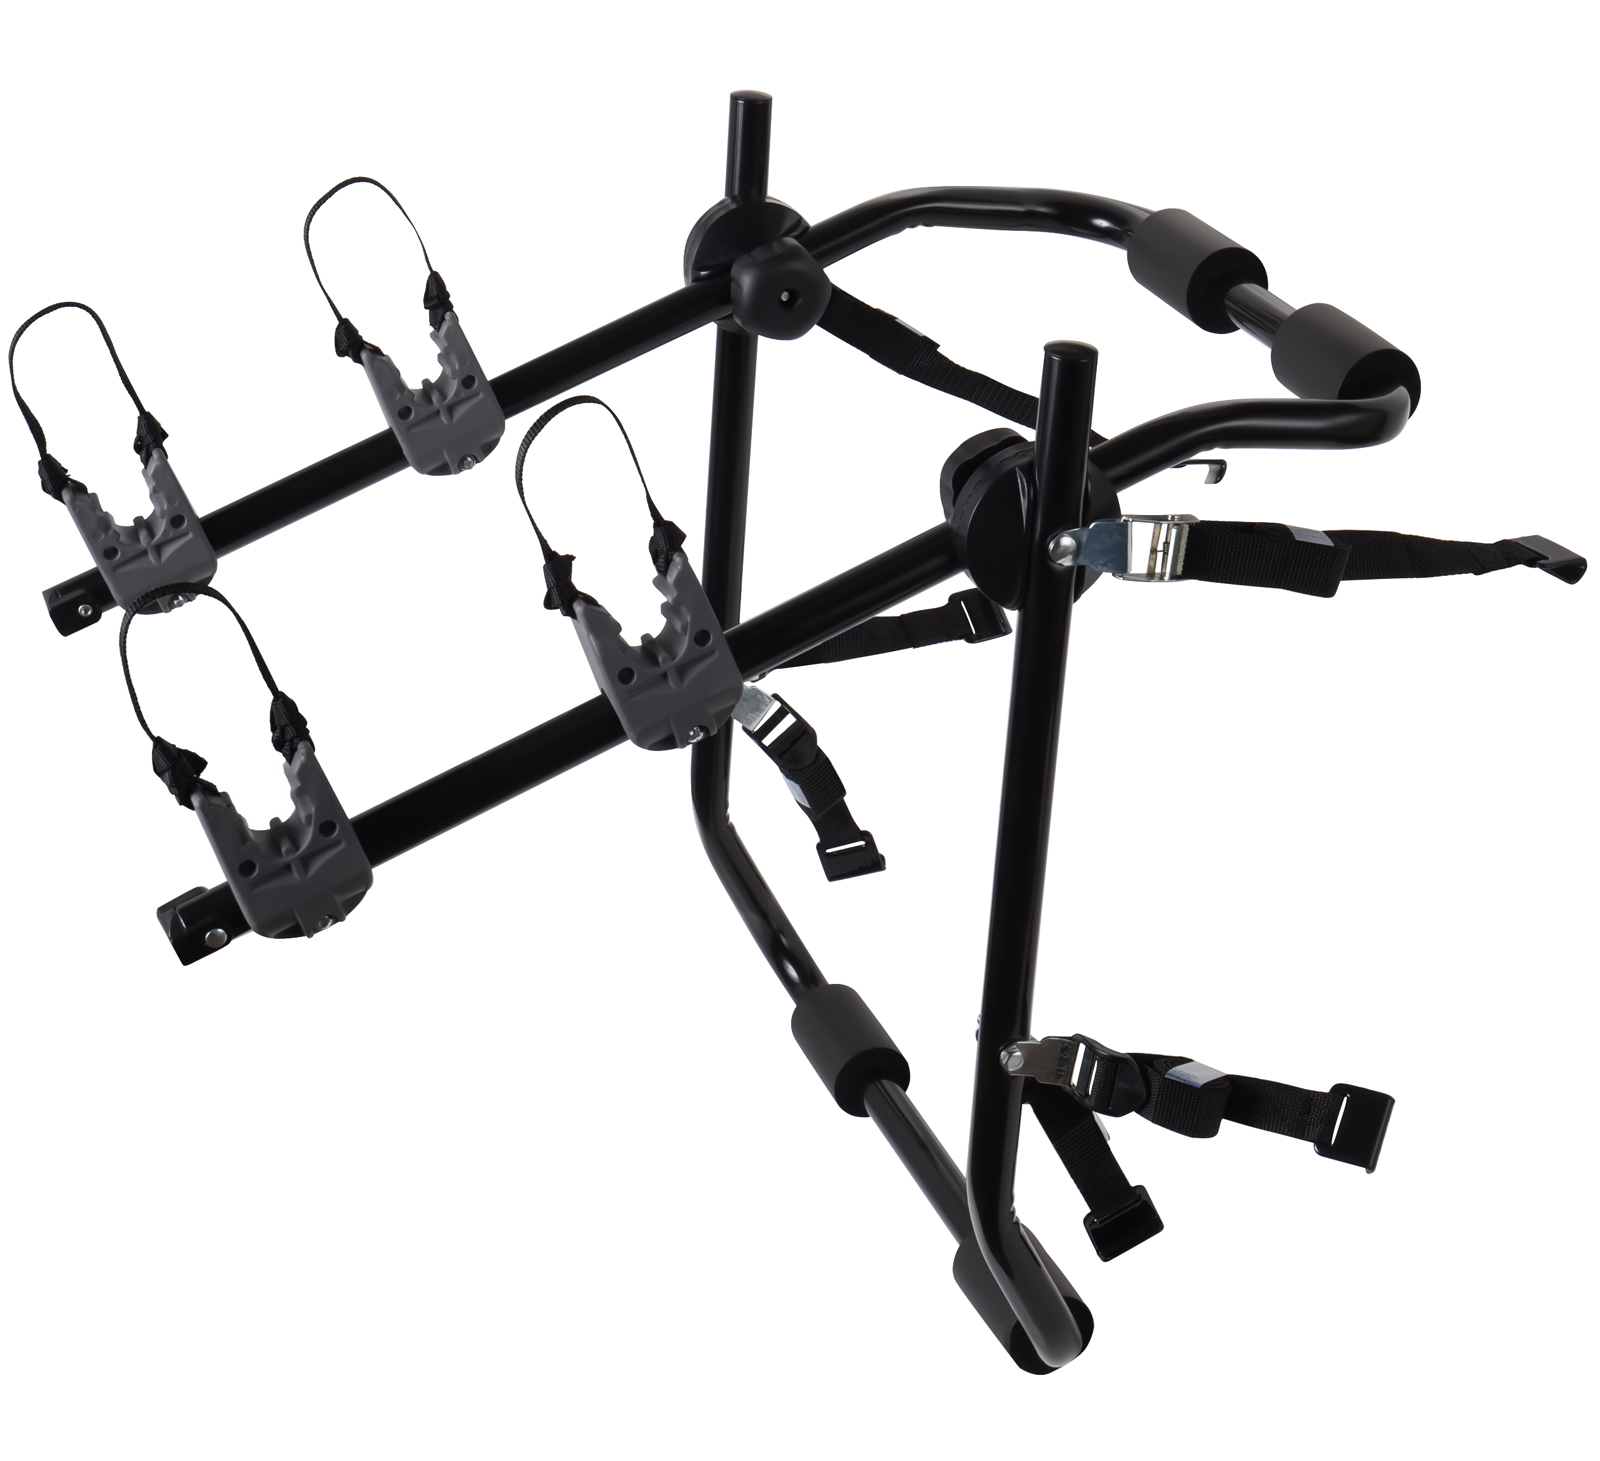 OxGord Two Bike Trunk Rack Mount For Cycling Hitch Carrier For Most Sedan Cars